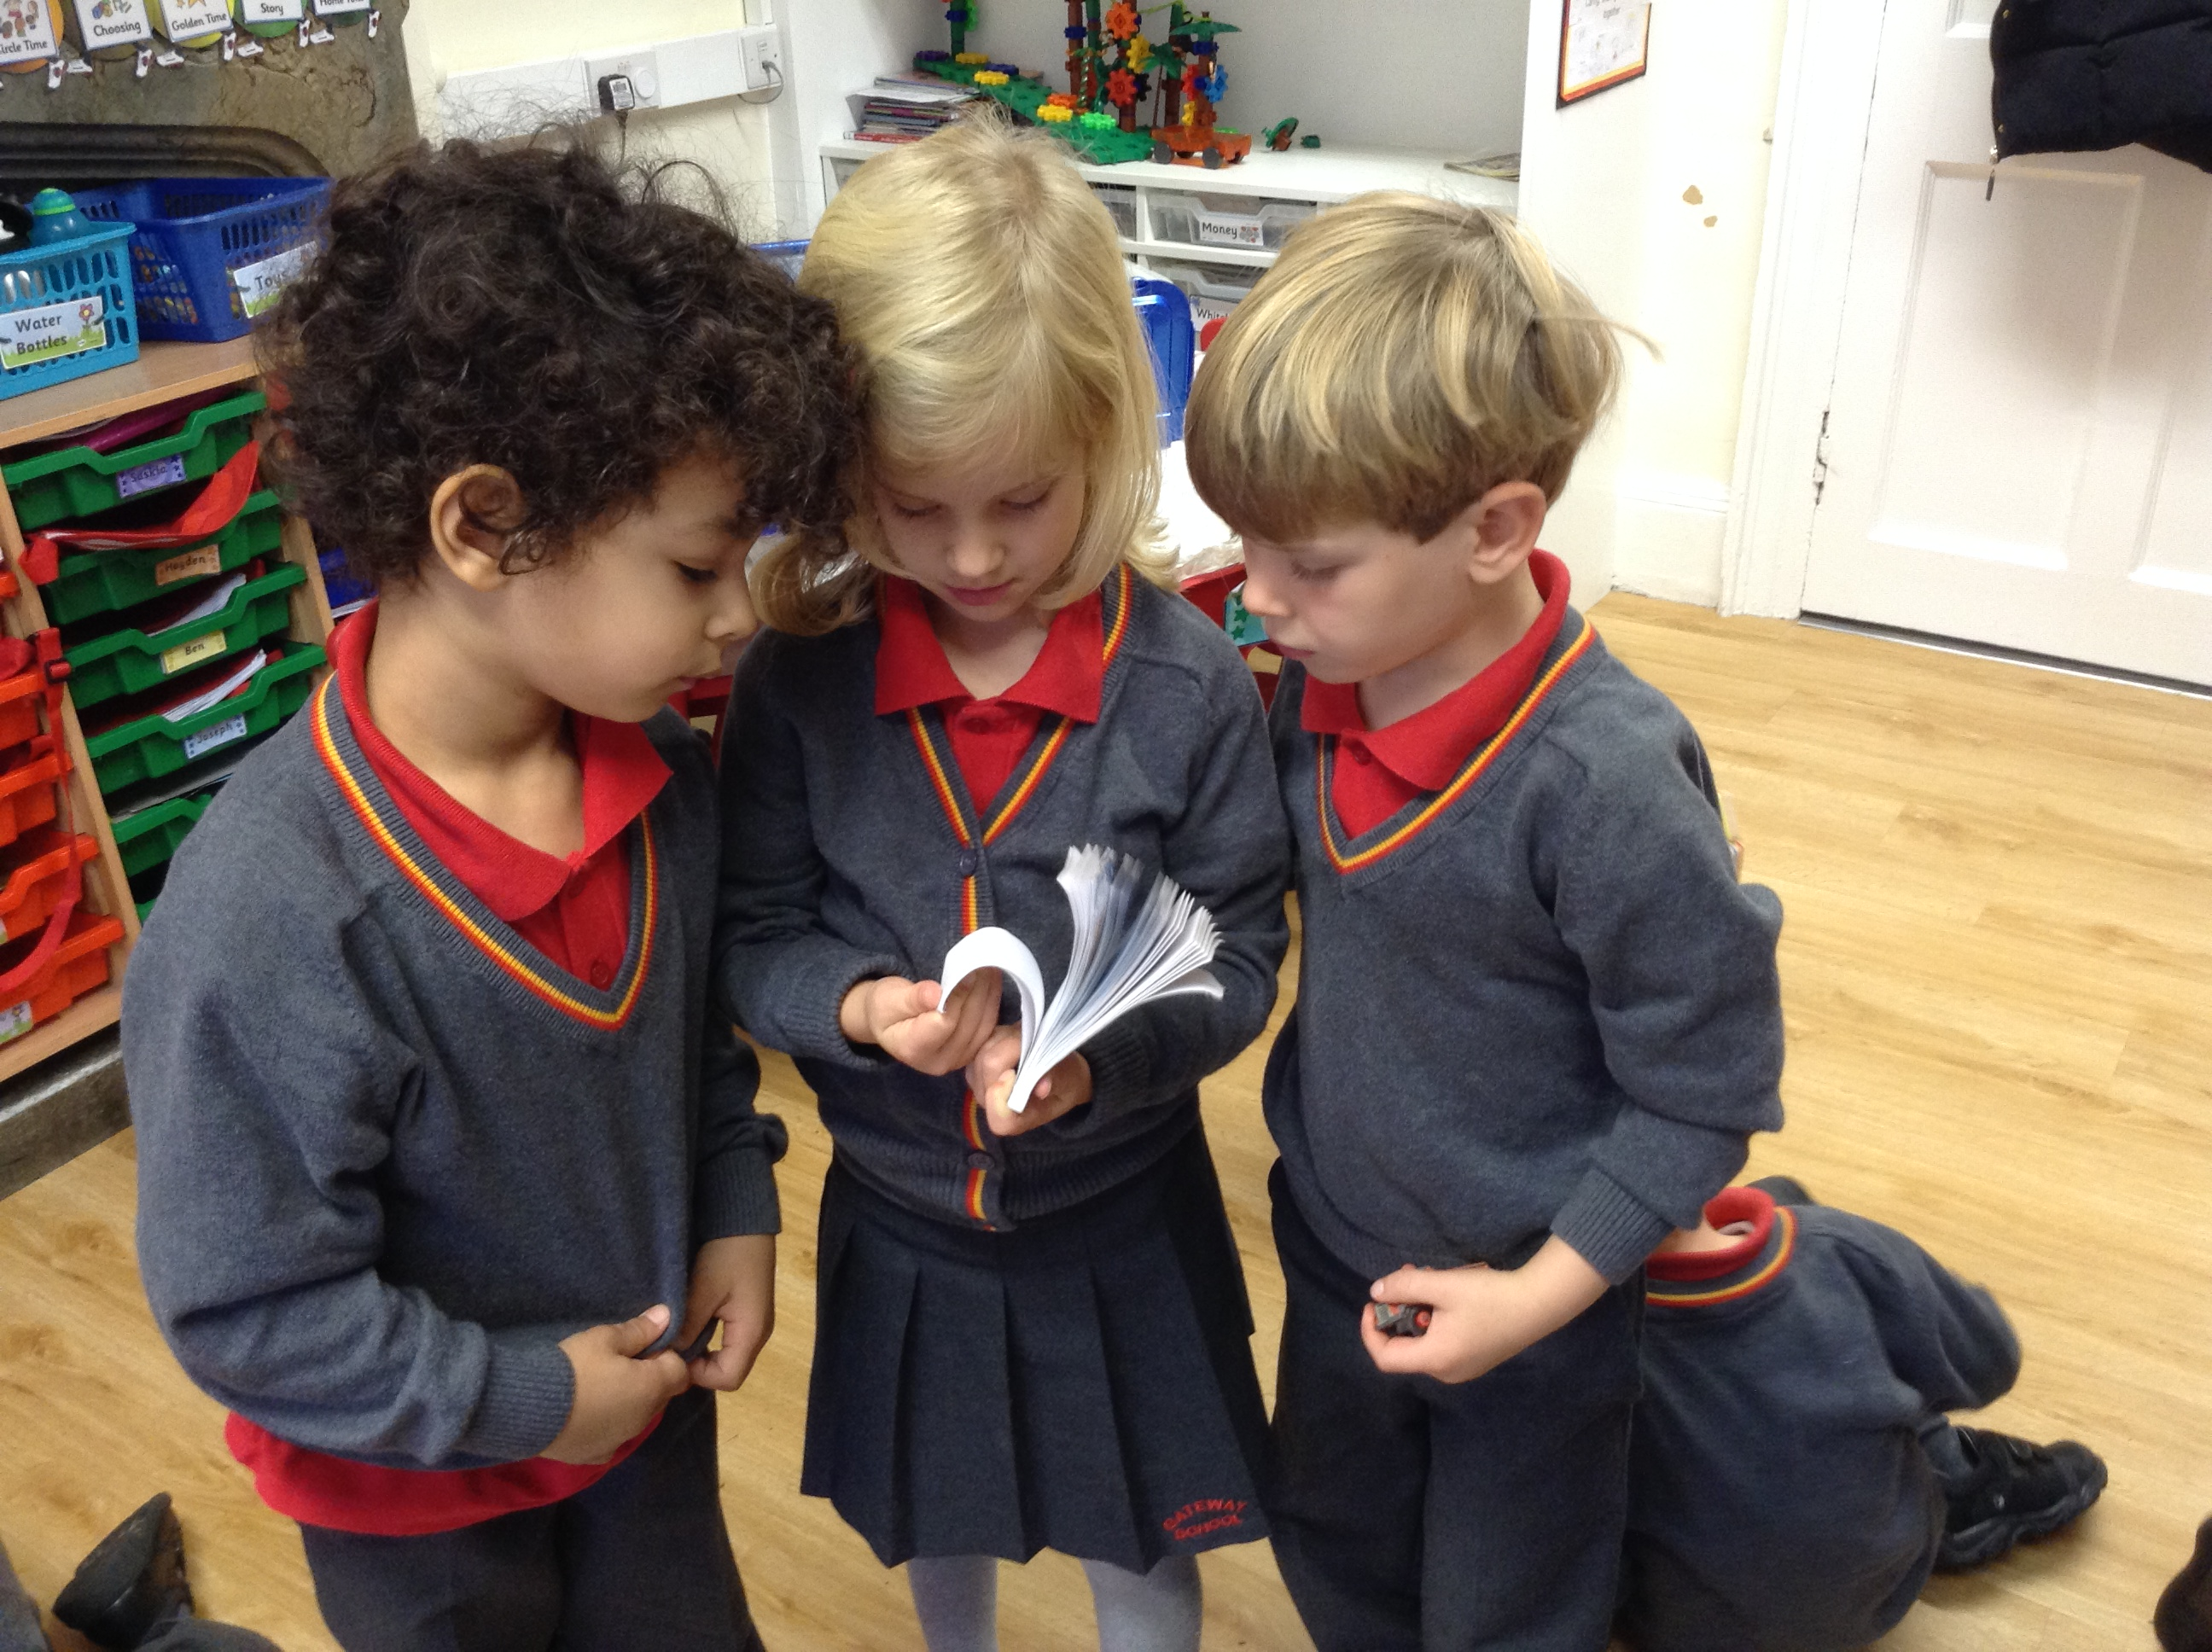 Reception investigate toys from the past